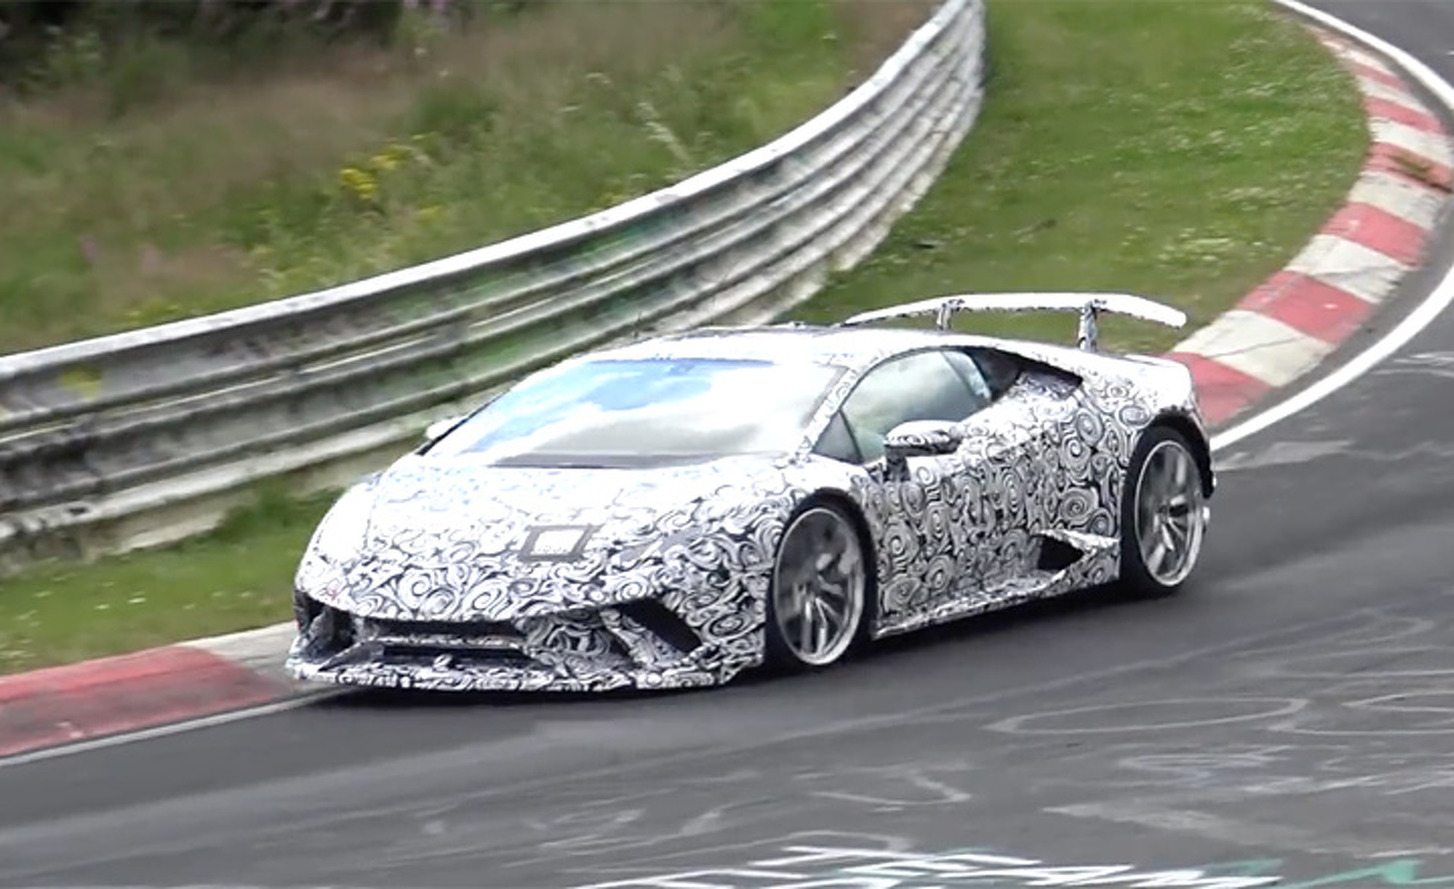 Could This Be the Latest Lamborghini Huracán Supercar?